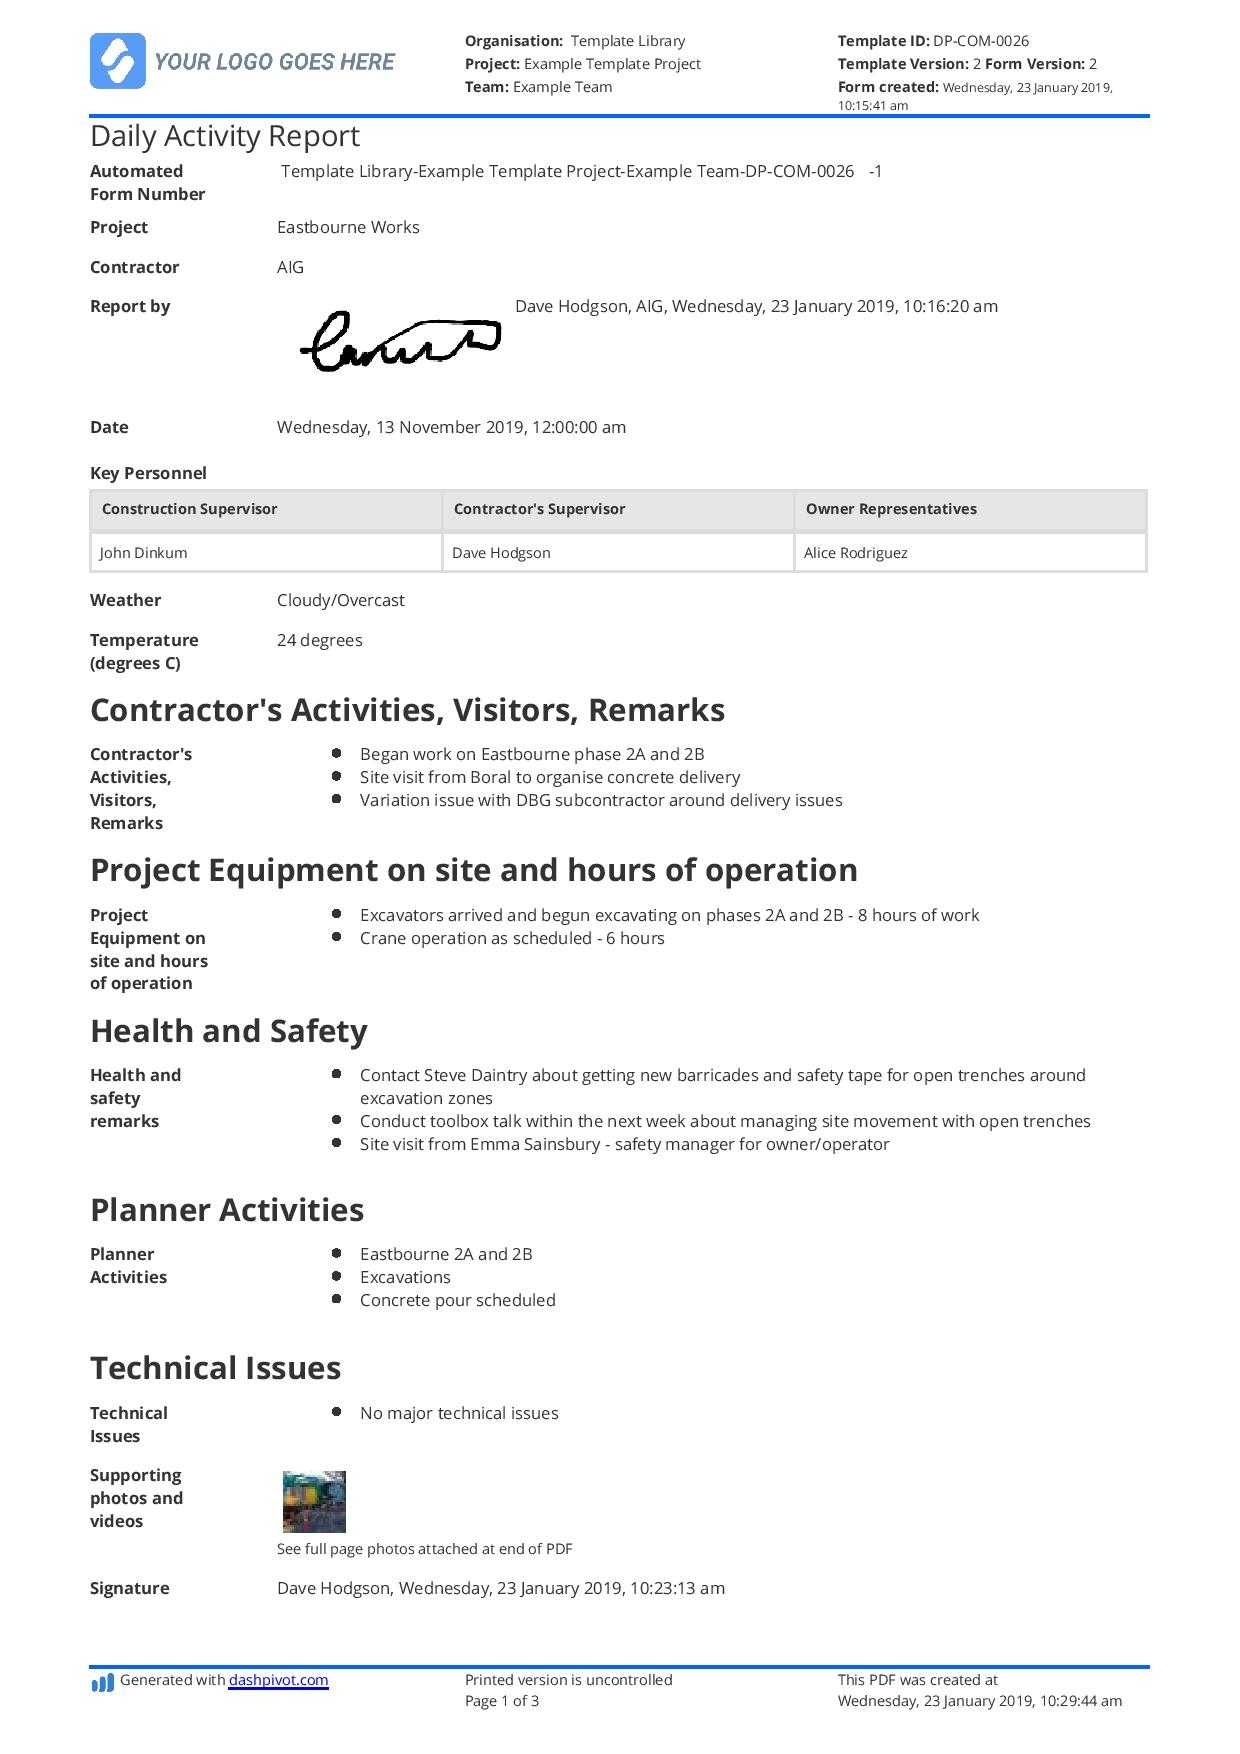 Operations Manager Report Template - Atlantaauctionco within Operations Manager Report Template